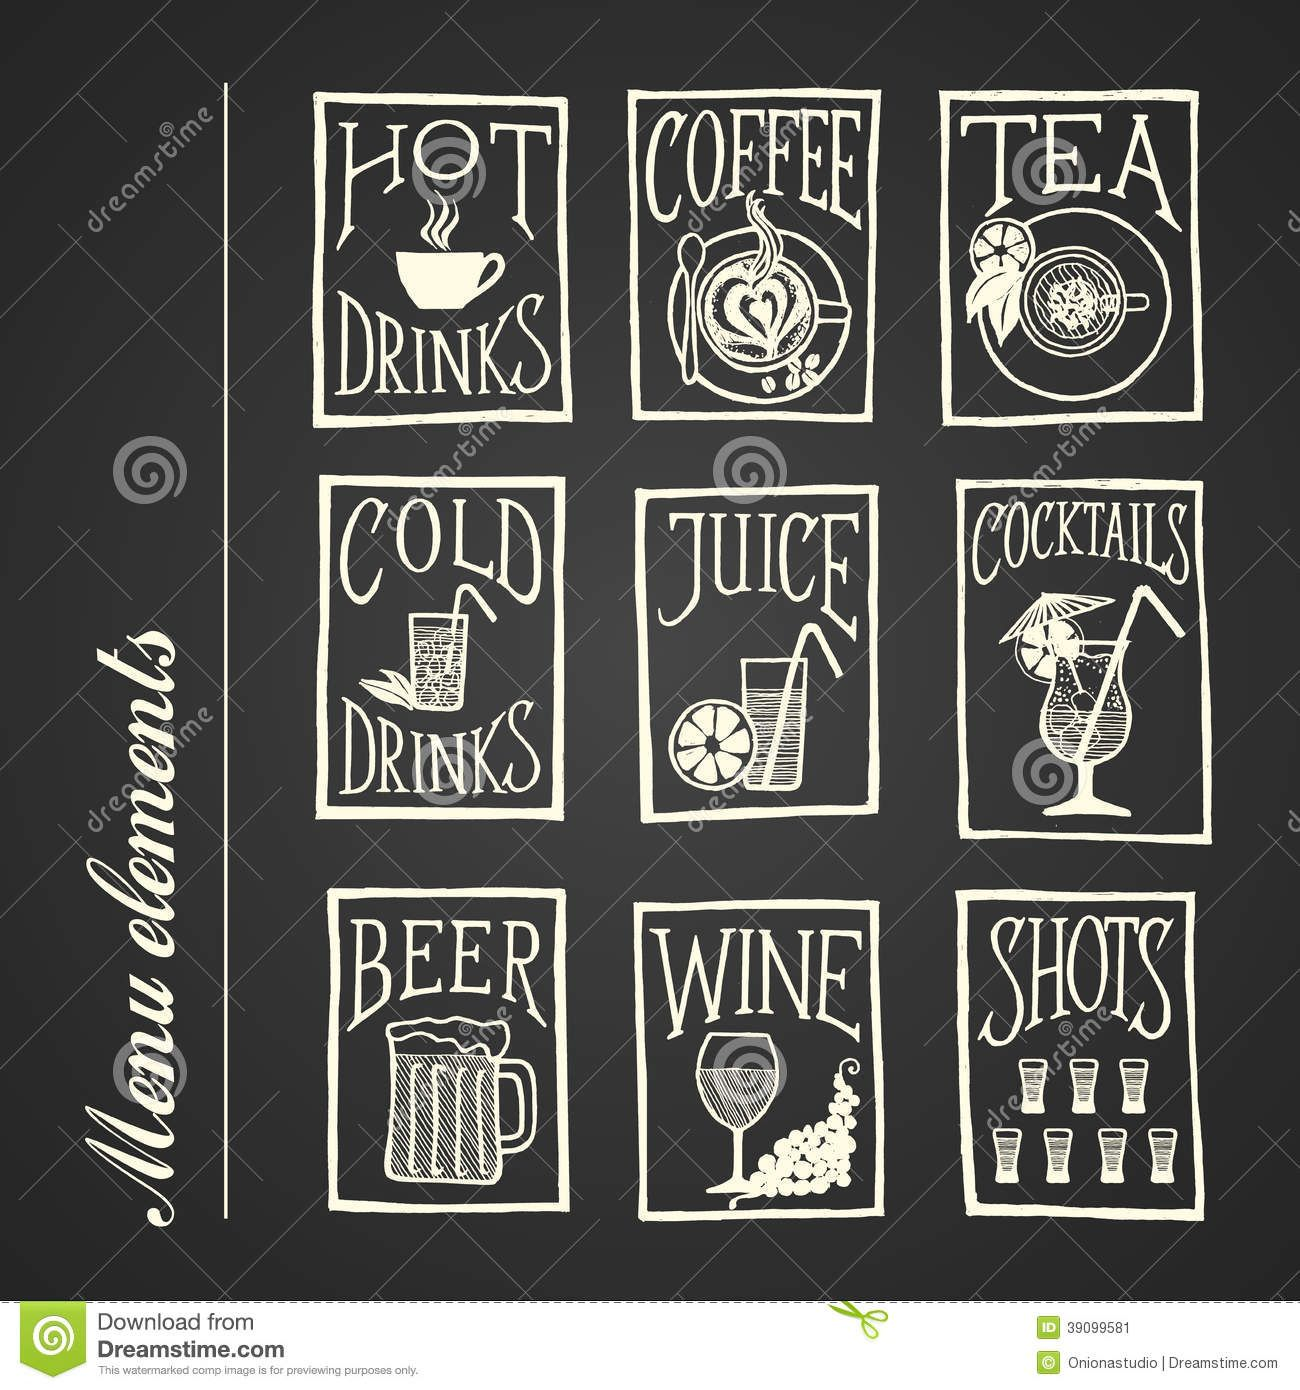 Chalkboard Menu Icons Drinks Download From Over 53